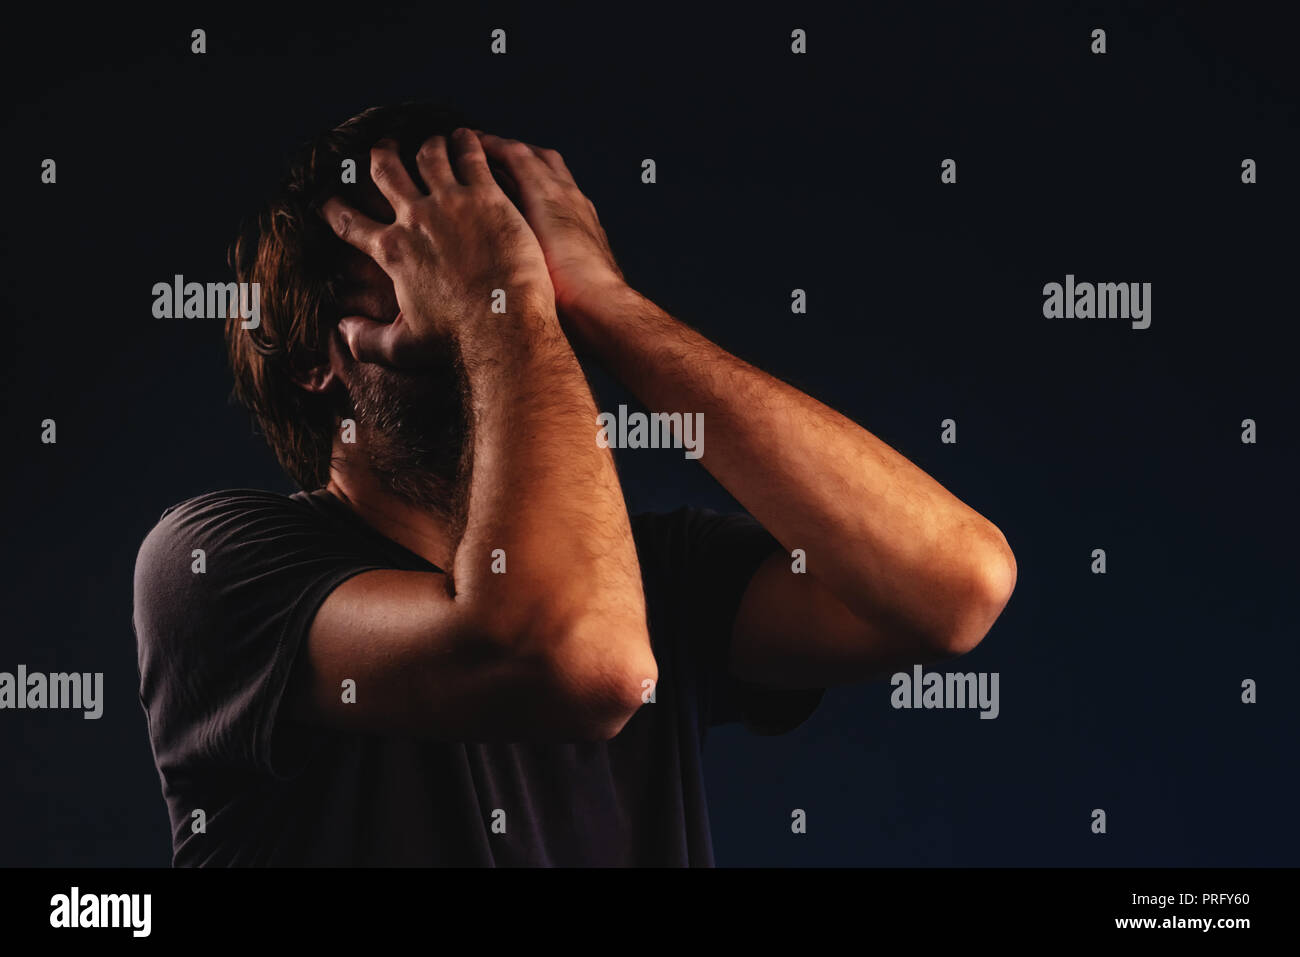 Man is crying in despair, hands covering face, low key portrait - Stock Image